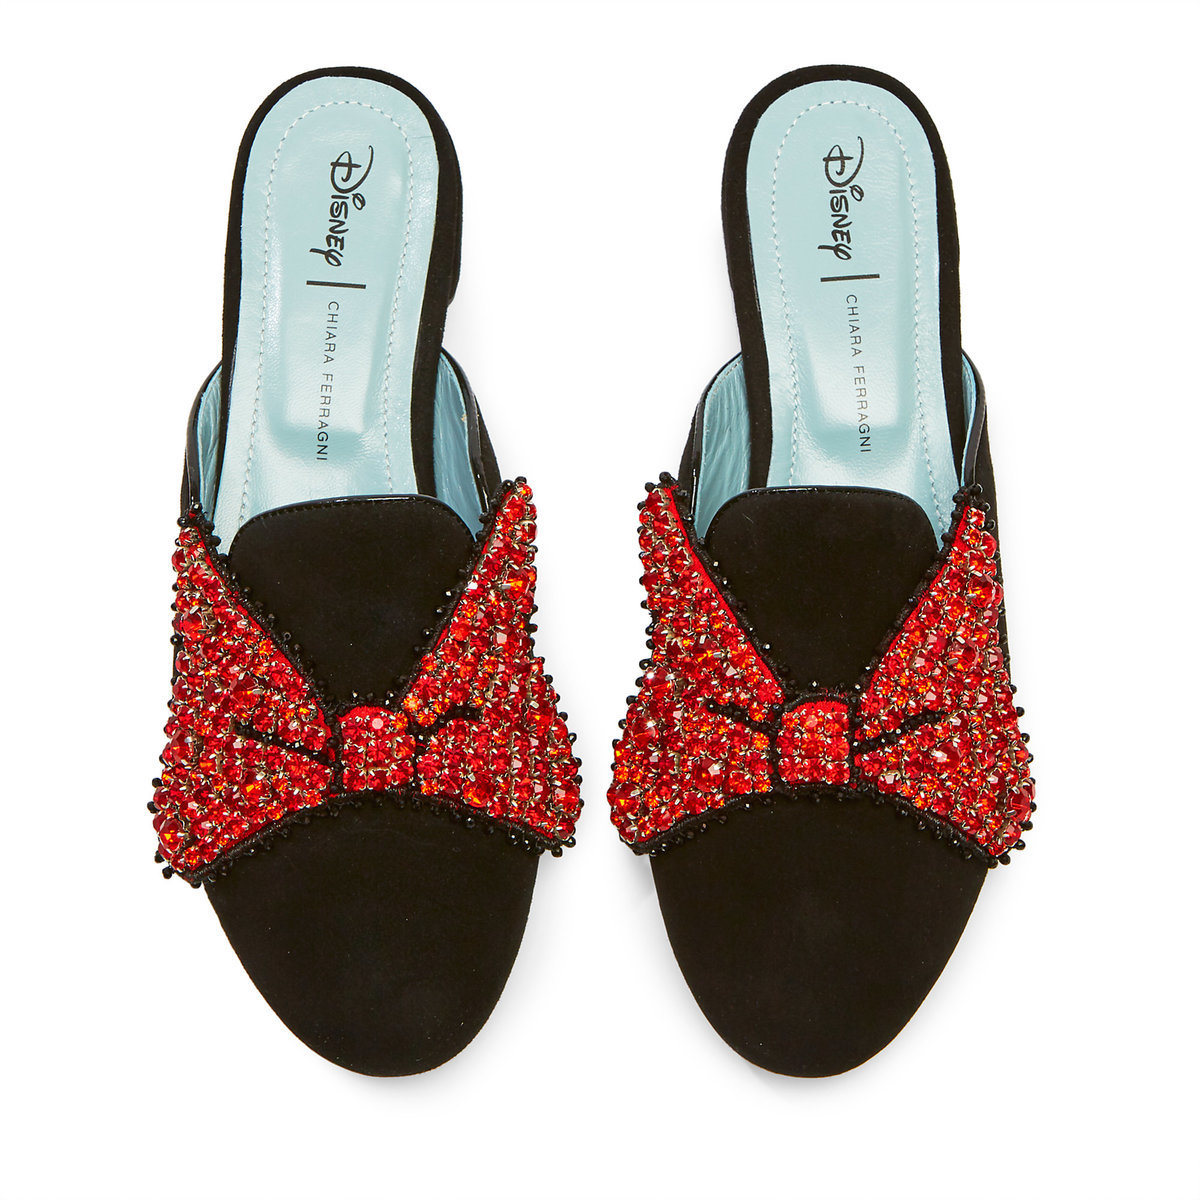 626d601b40b Product Image of Minnie Mouse Bow Mules for Women by Chiara Ferragni -  Black   1